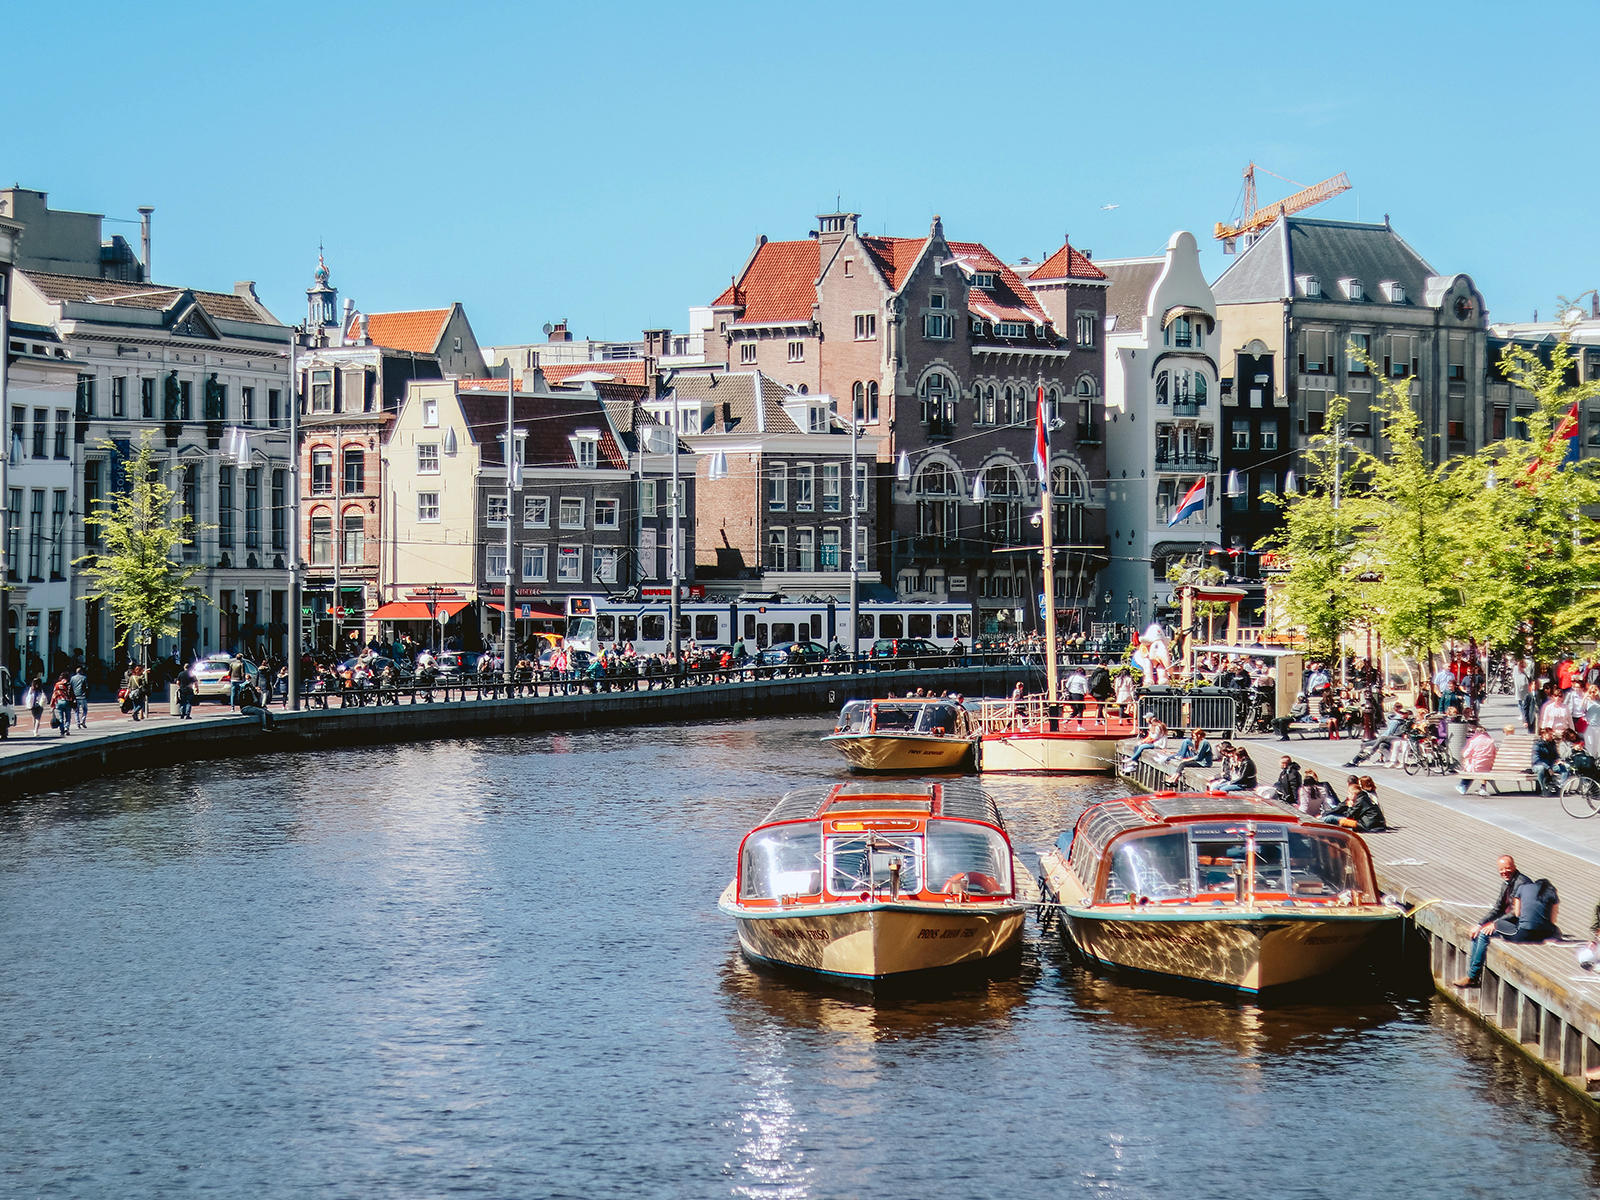 Canal boats in front of Amsterdam's famous merchant houses